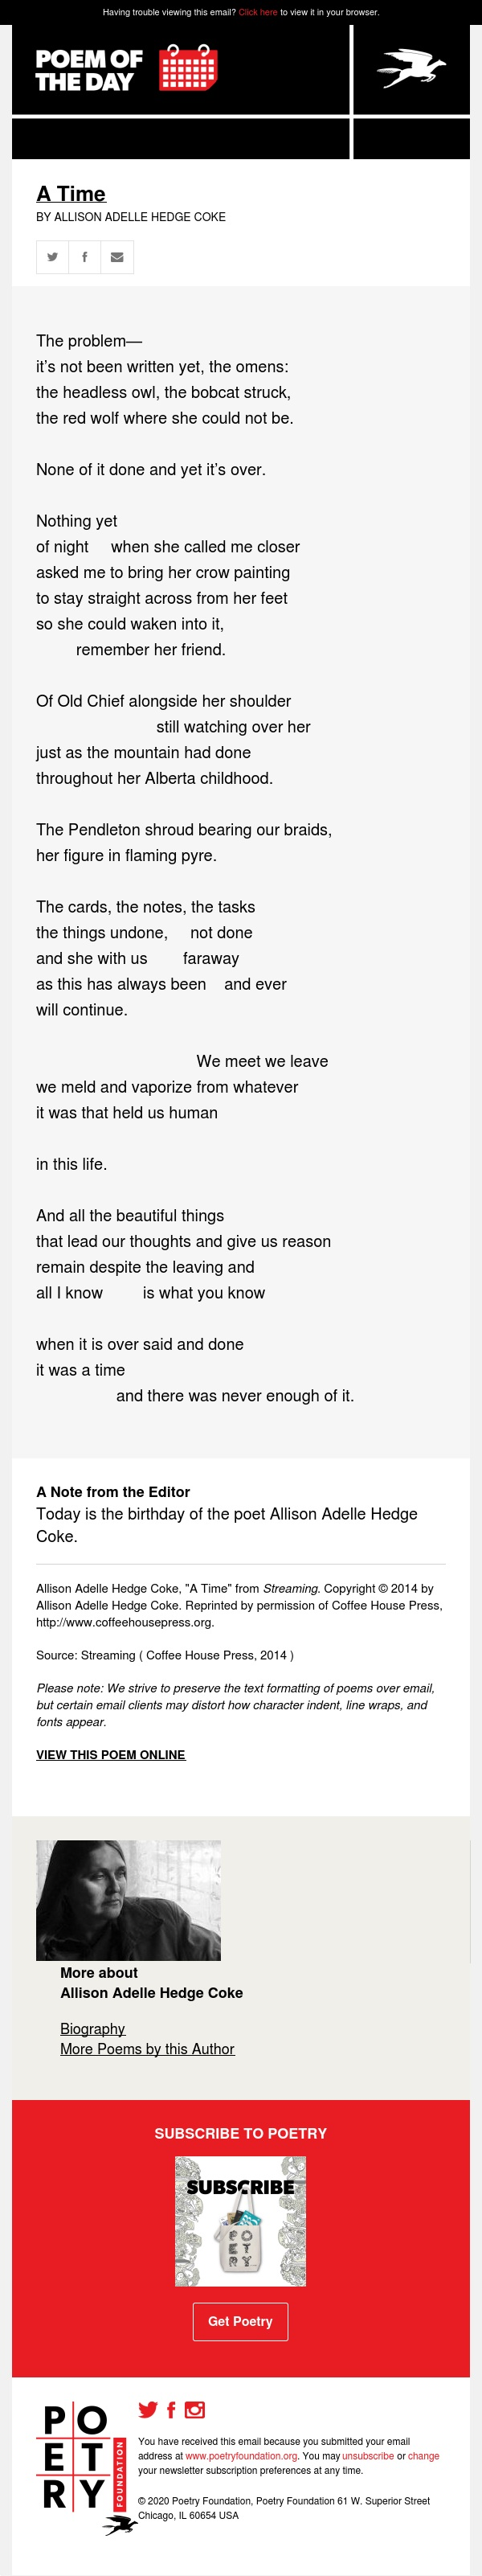 Poem of the Day: A Time